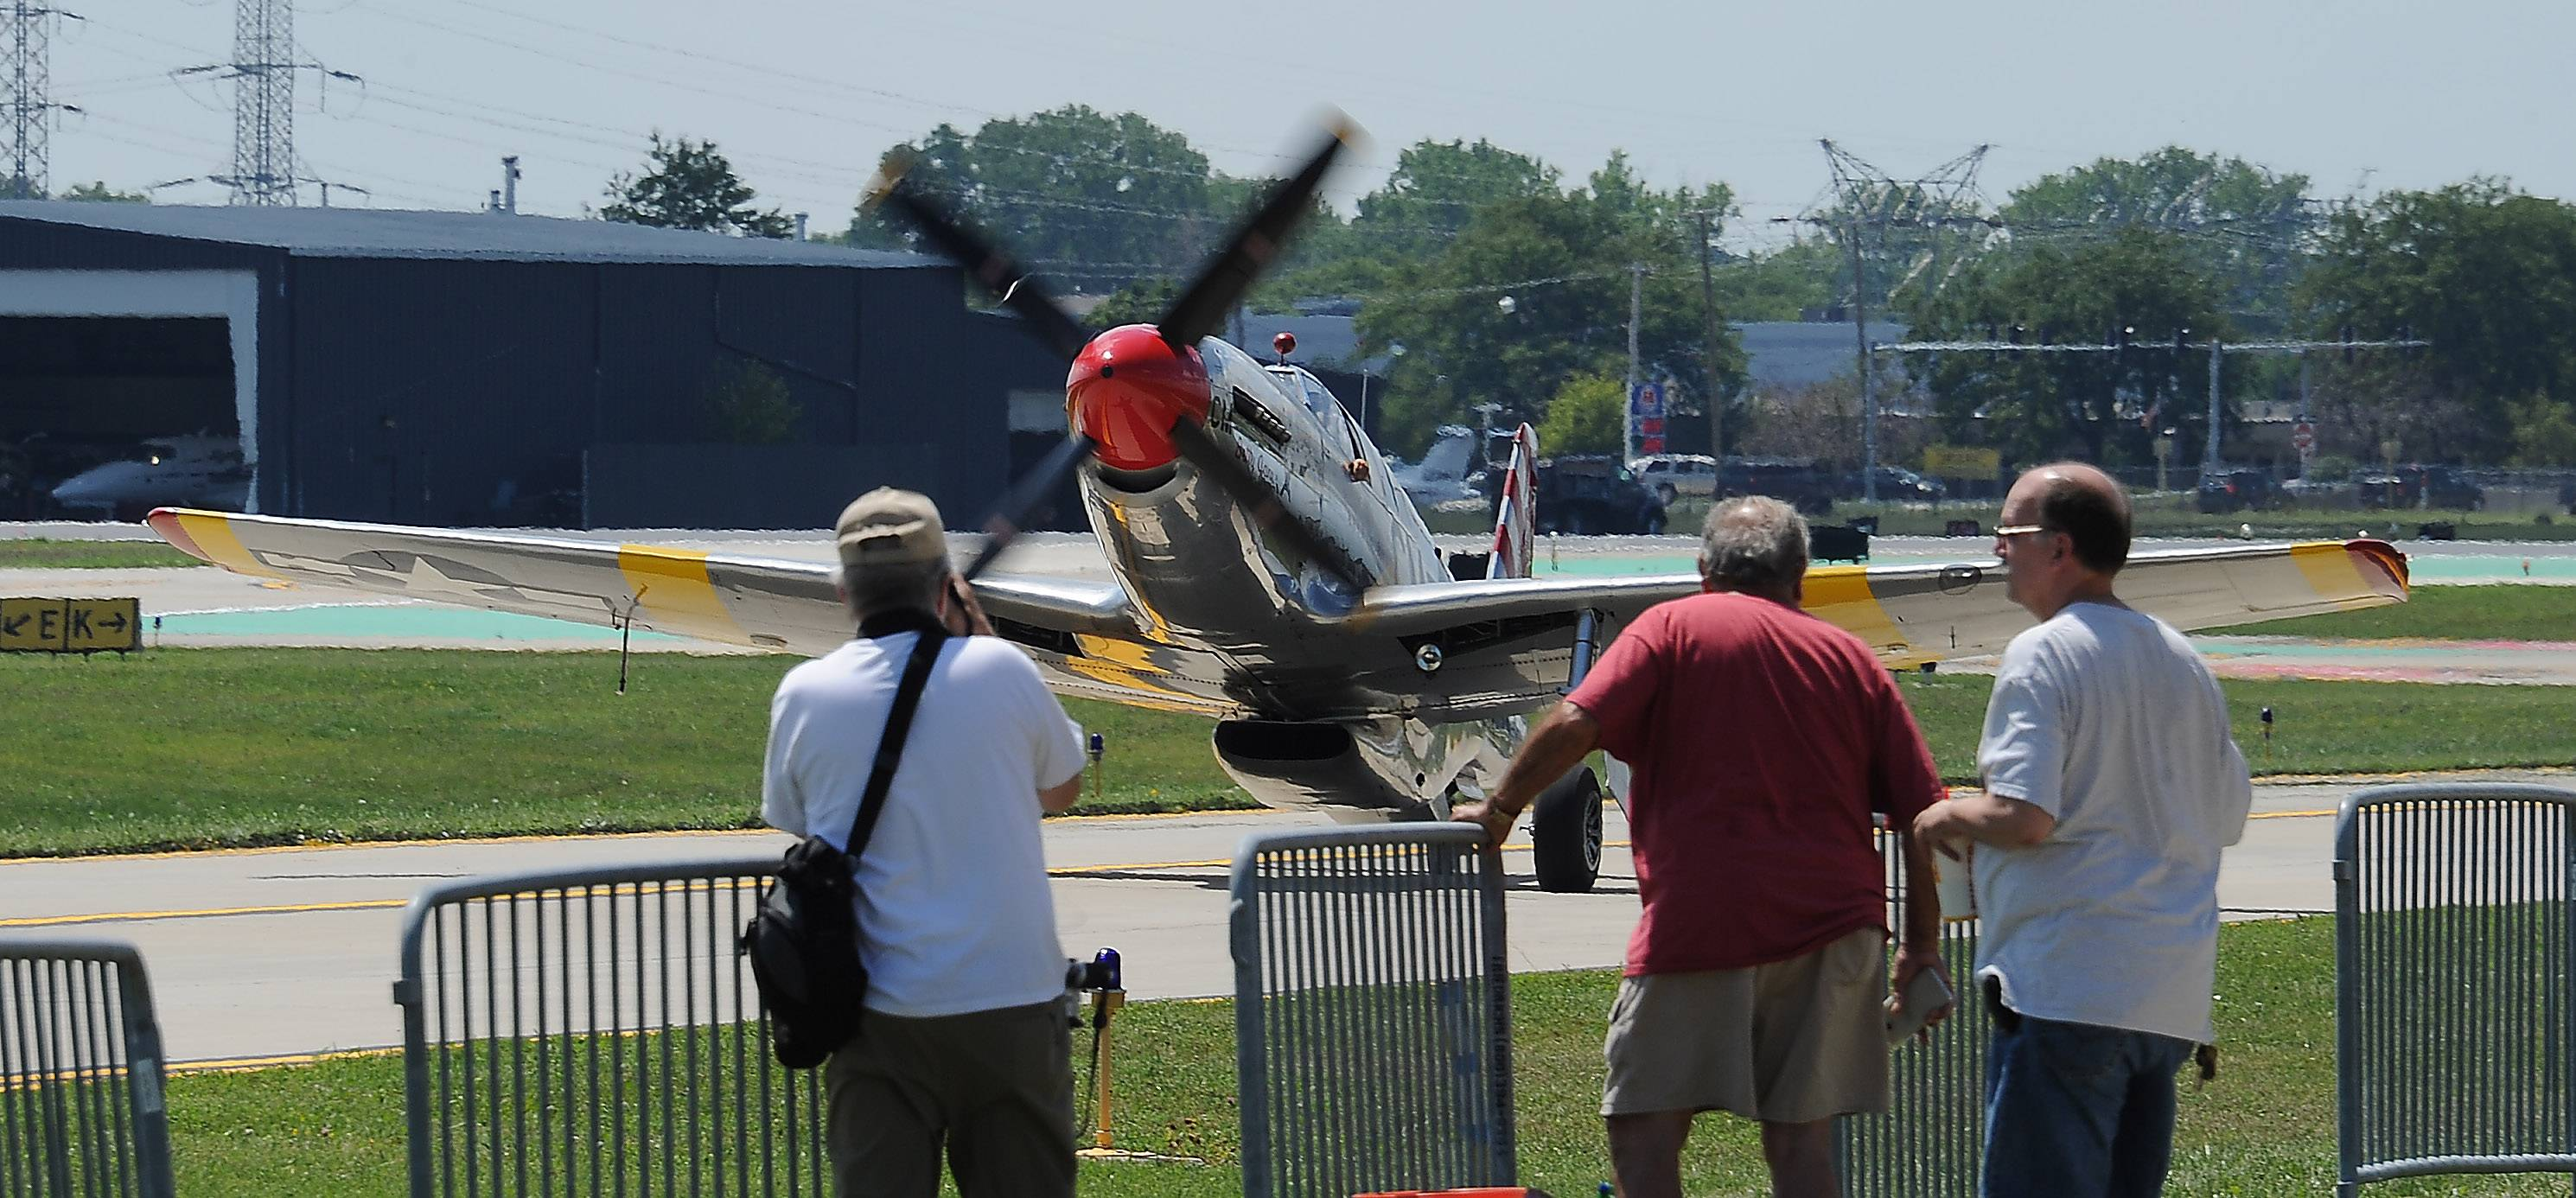 A P-51C Mustang also is part of the Wings of Freedom Tour at Chicago Executive Airport in Wheeling.